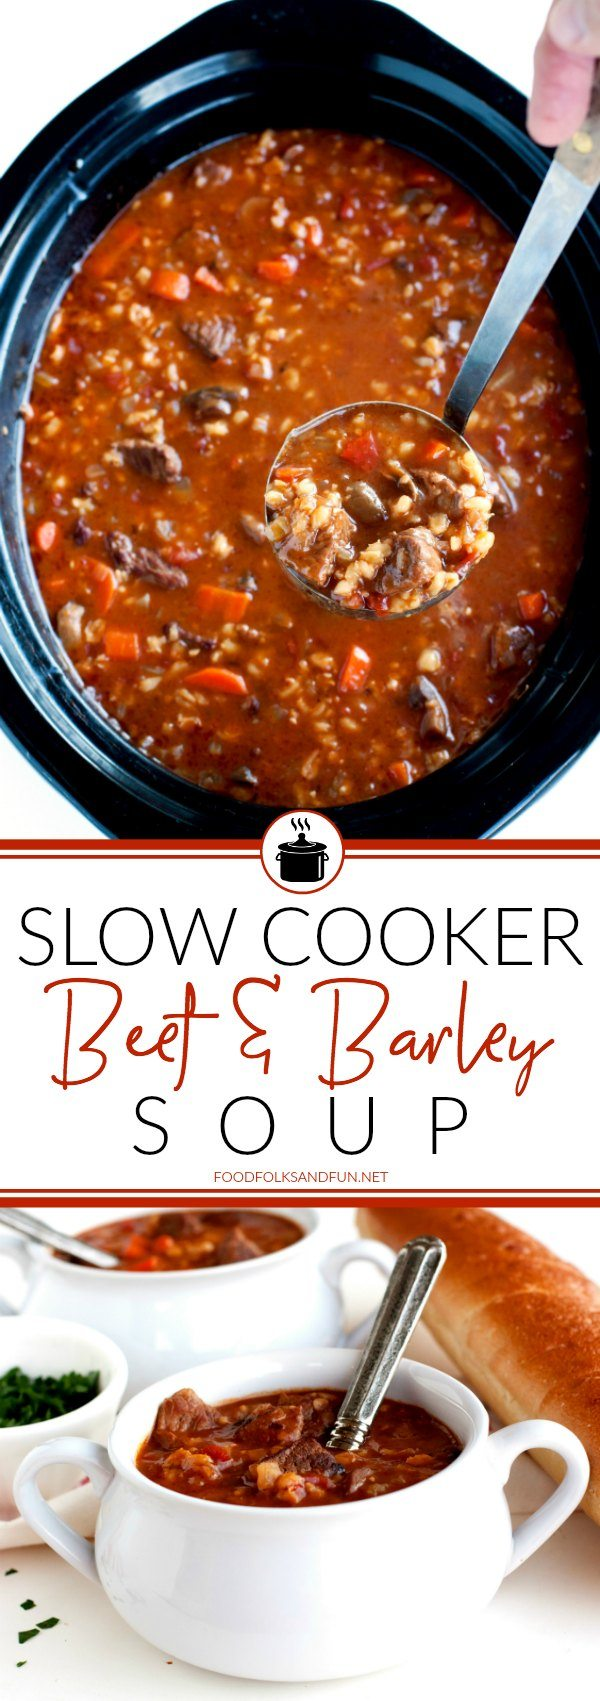 A picture collage of beef and barley soup.